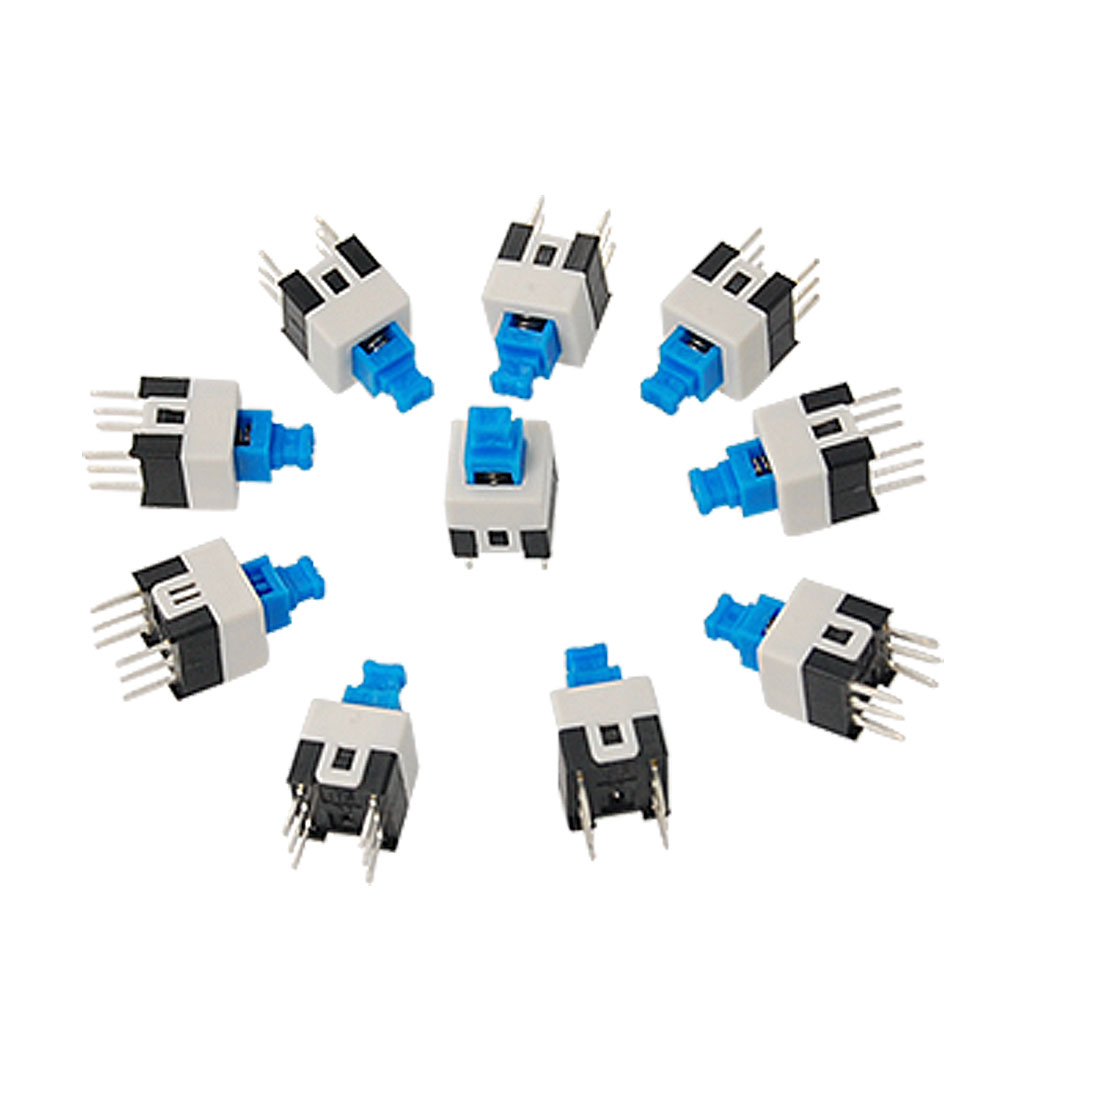 10 Pcs 7 x 7mm PCB Panel Mount Tact Tactile Push Button Switch Self Lock 6 Pin